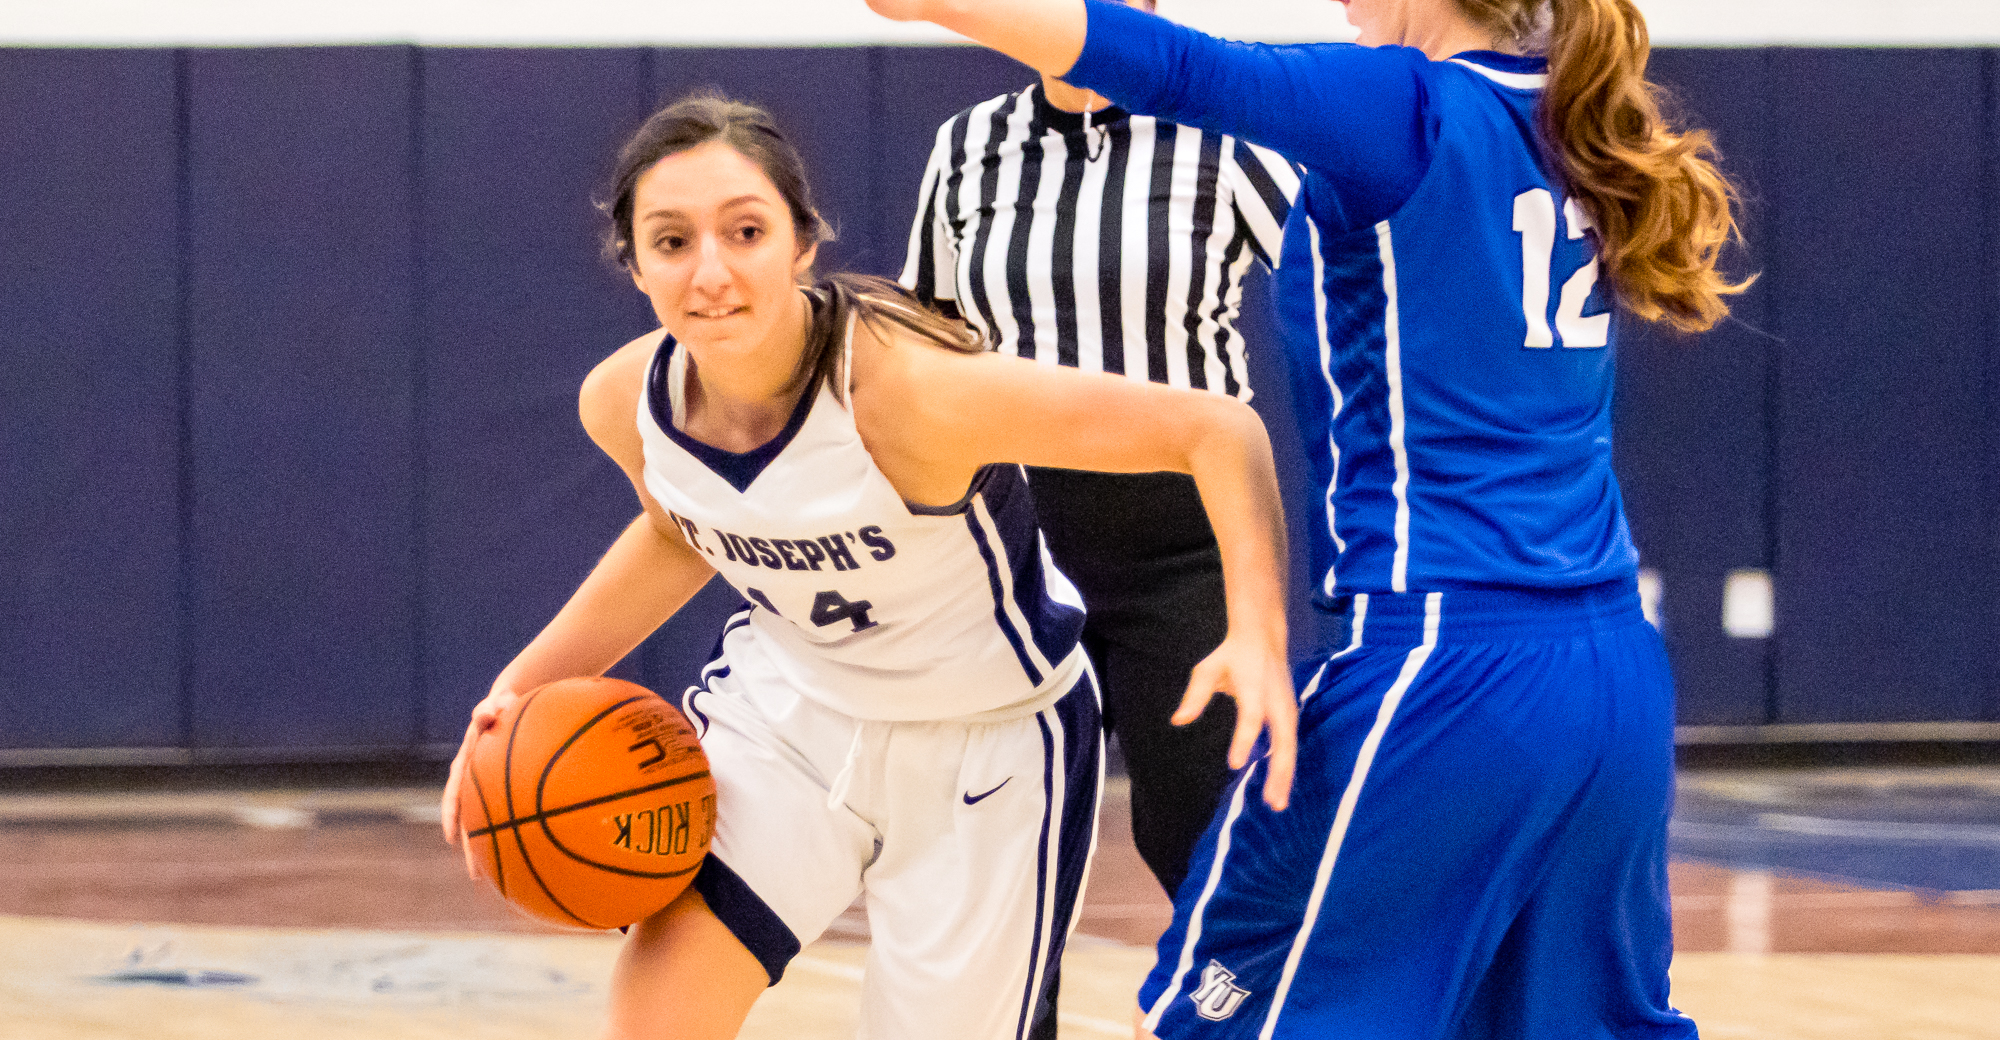 Nina DiCioccio scored a career-high 11 points with six rebounds, two steals, two blocks and an assist in 14 minutes.